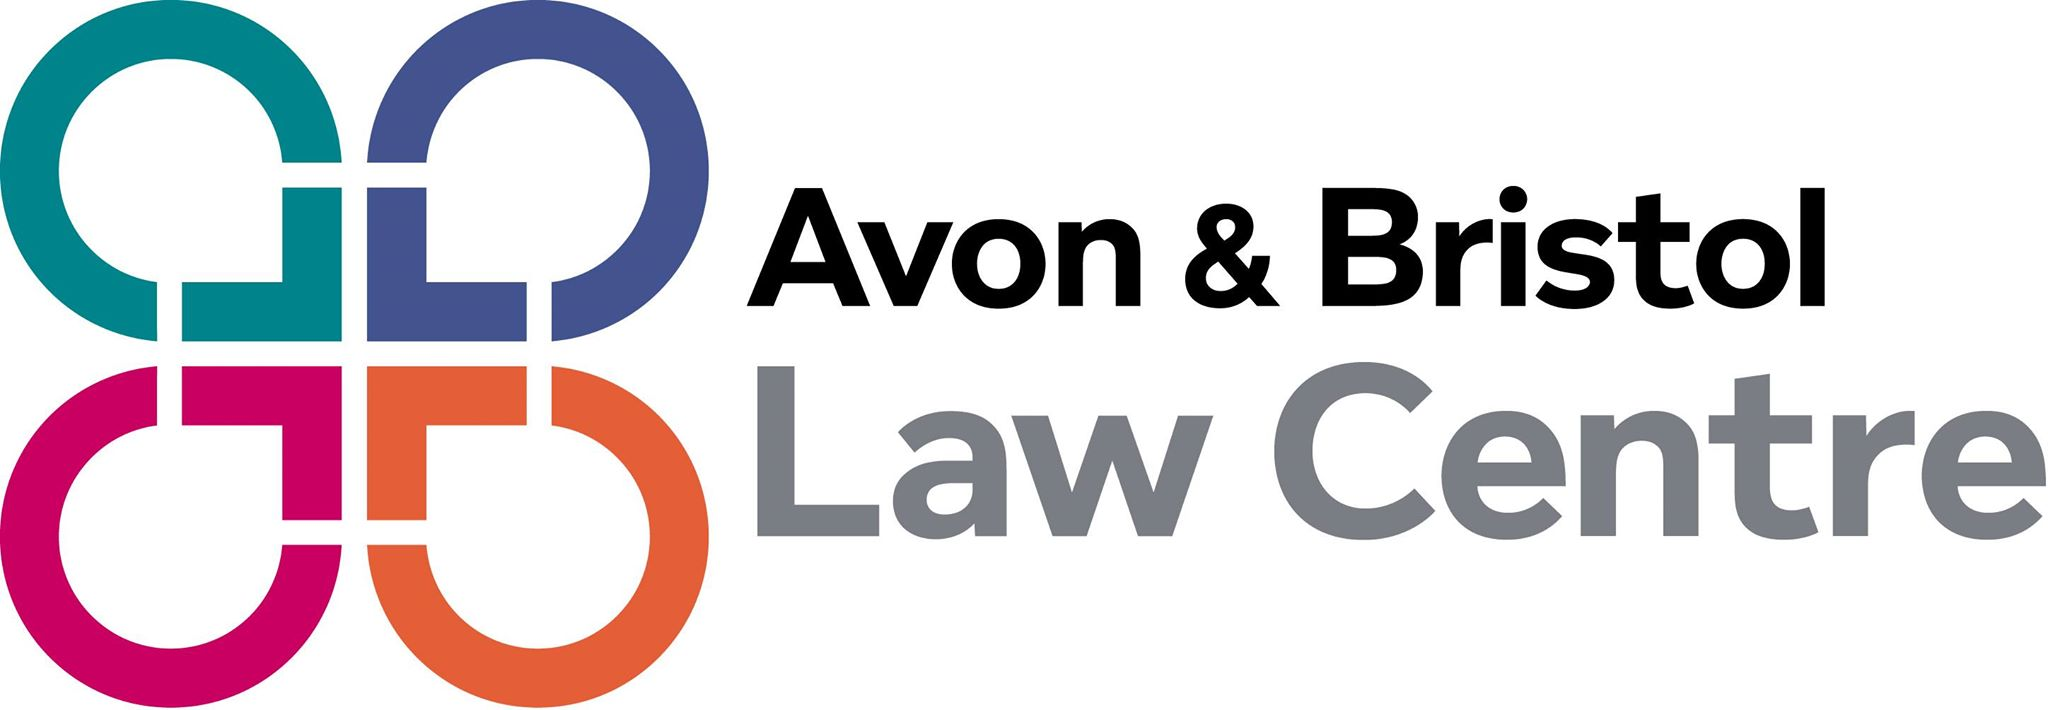 Avon and Bristol Law Centre